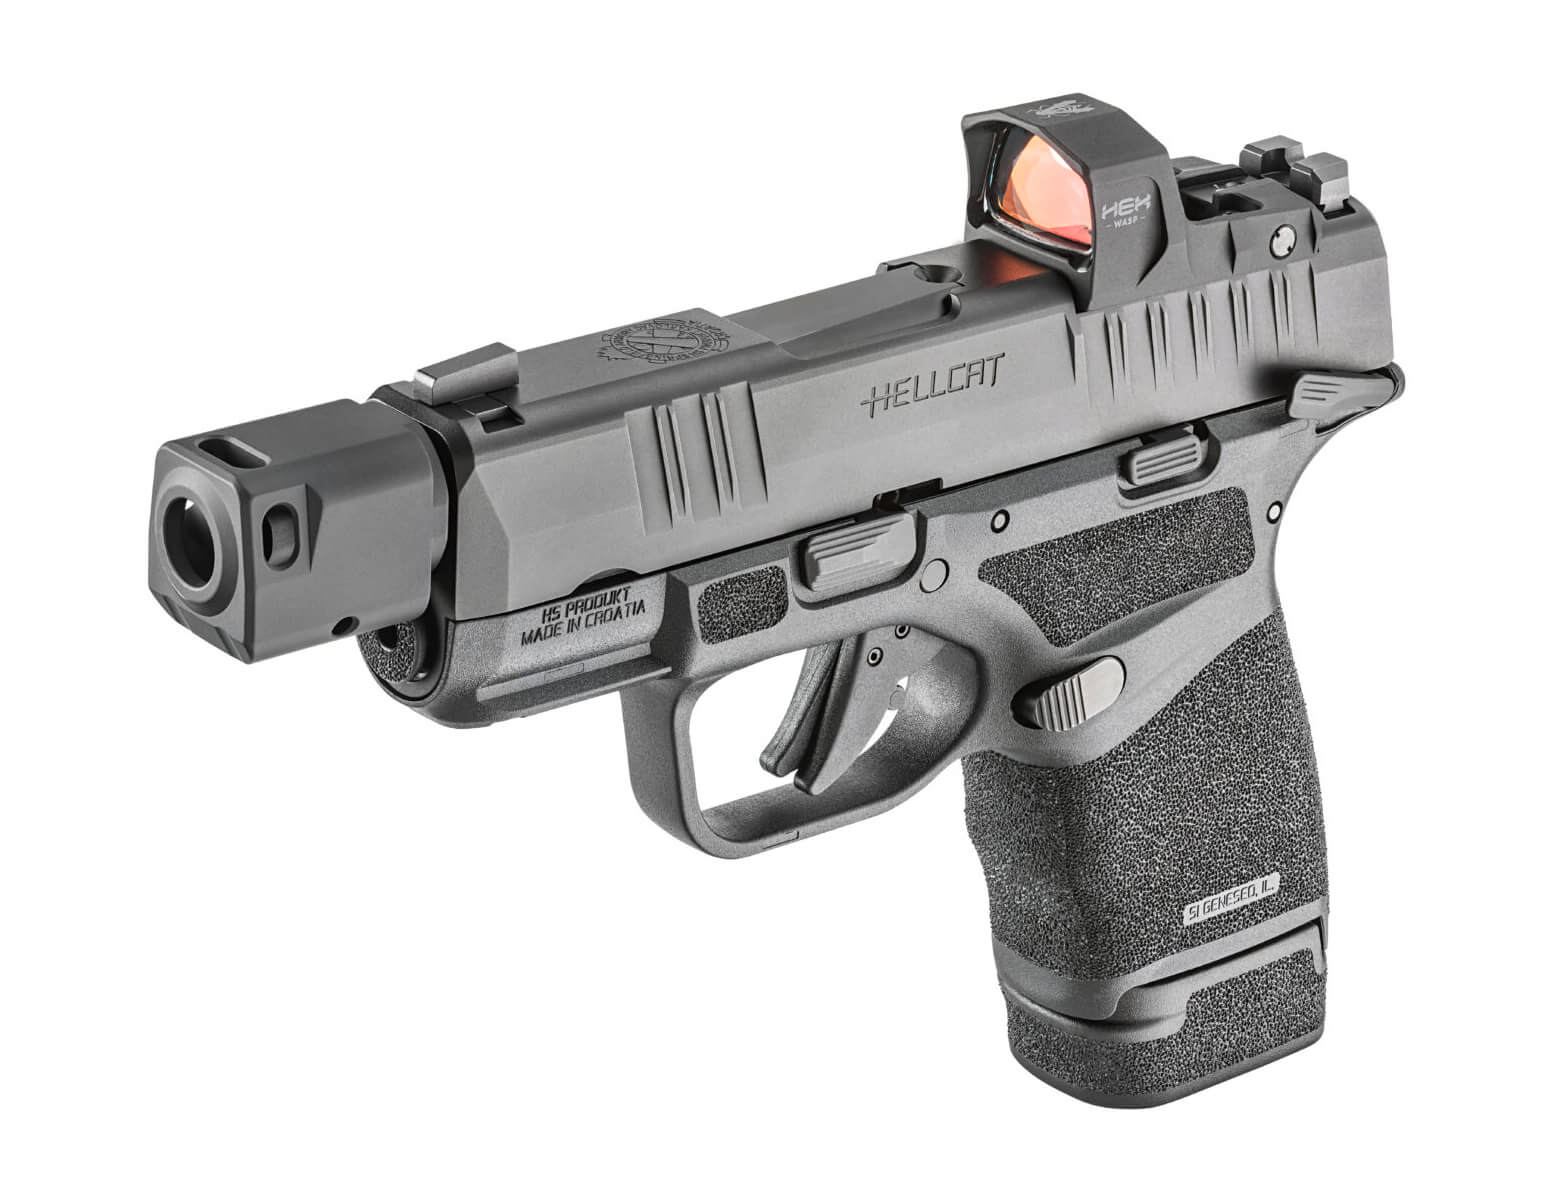 Springfield Armory Hellcat RDP side view